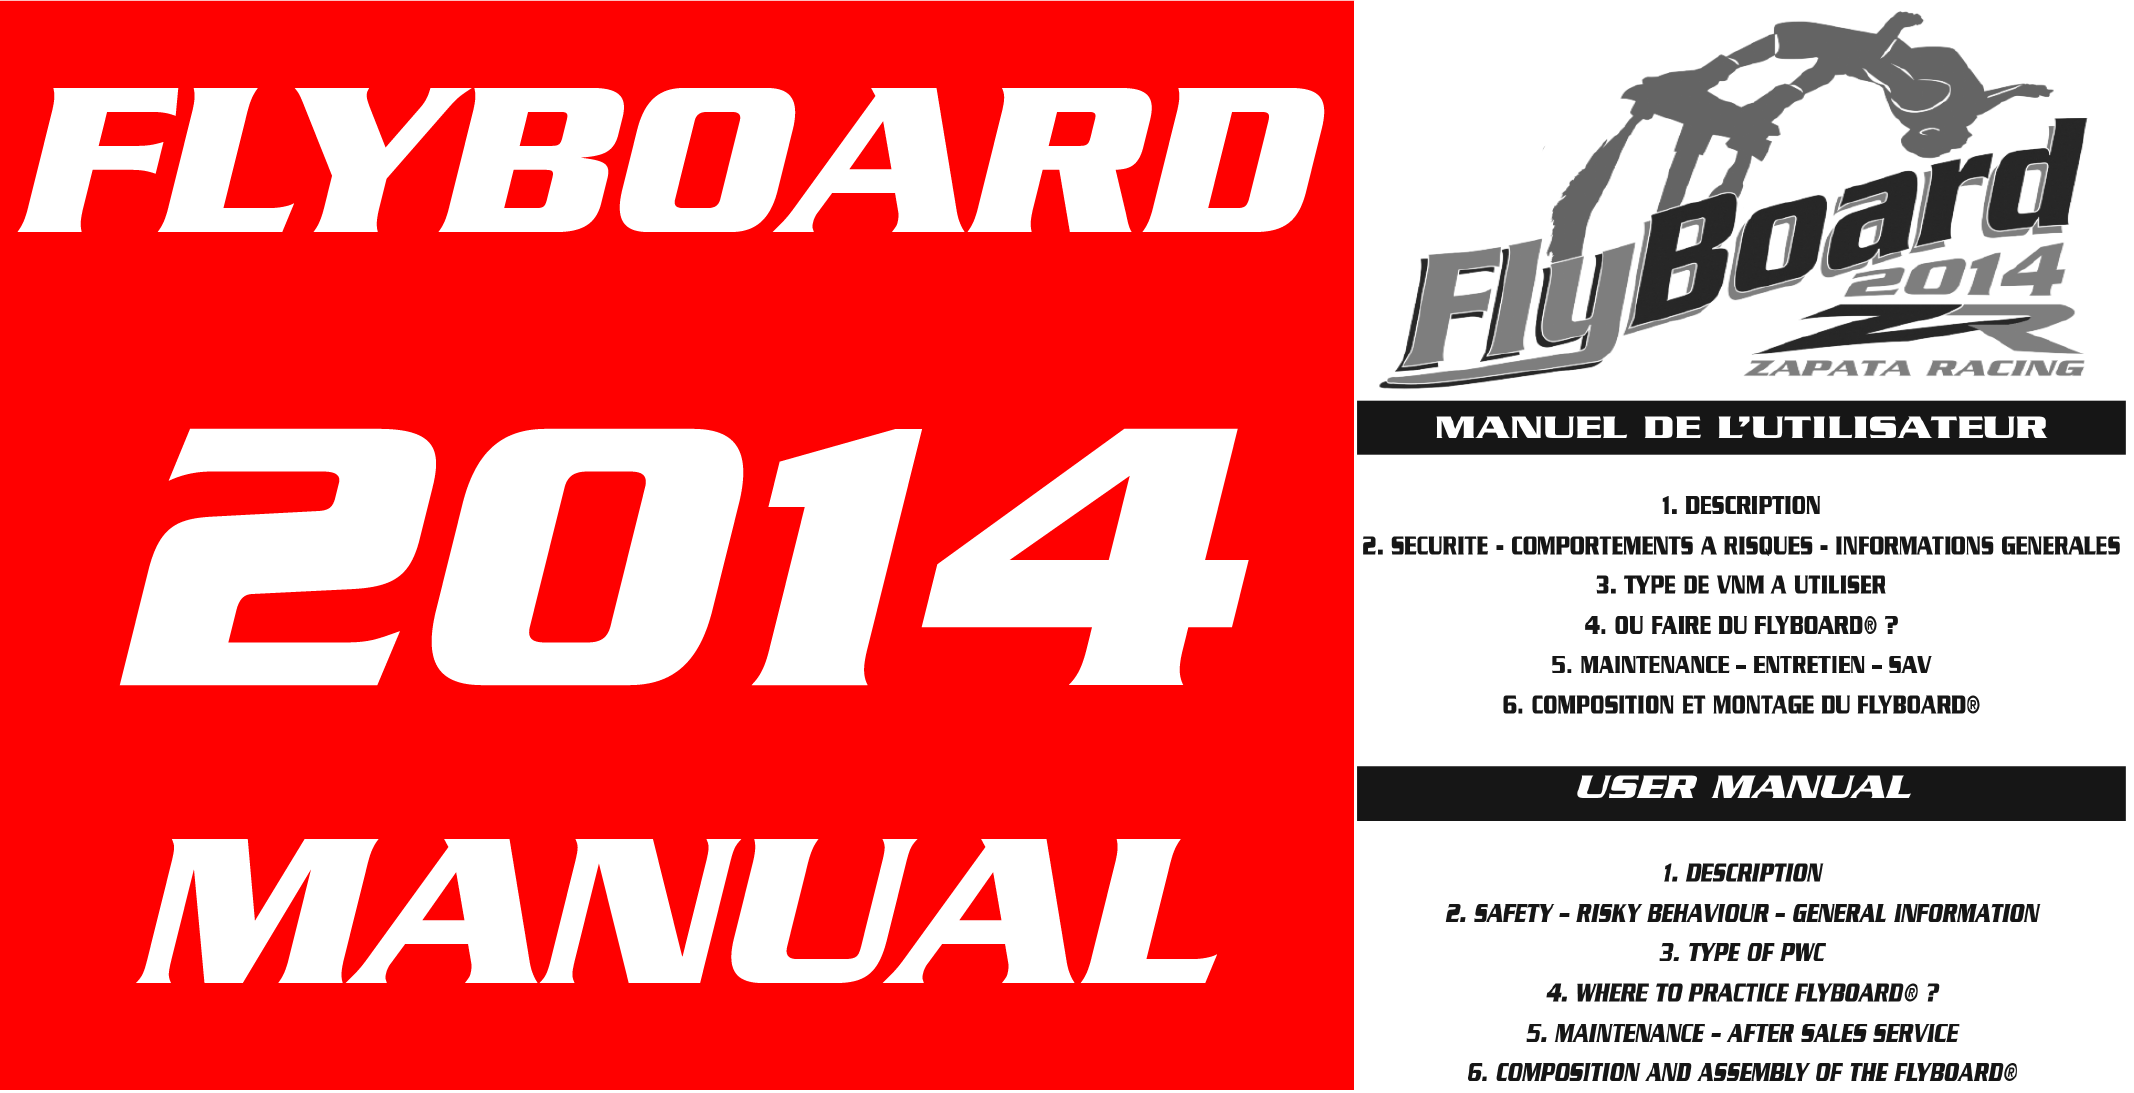 Flyboard V3 2014 Manual Download